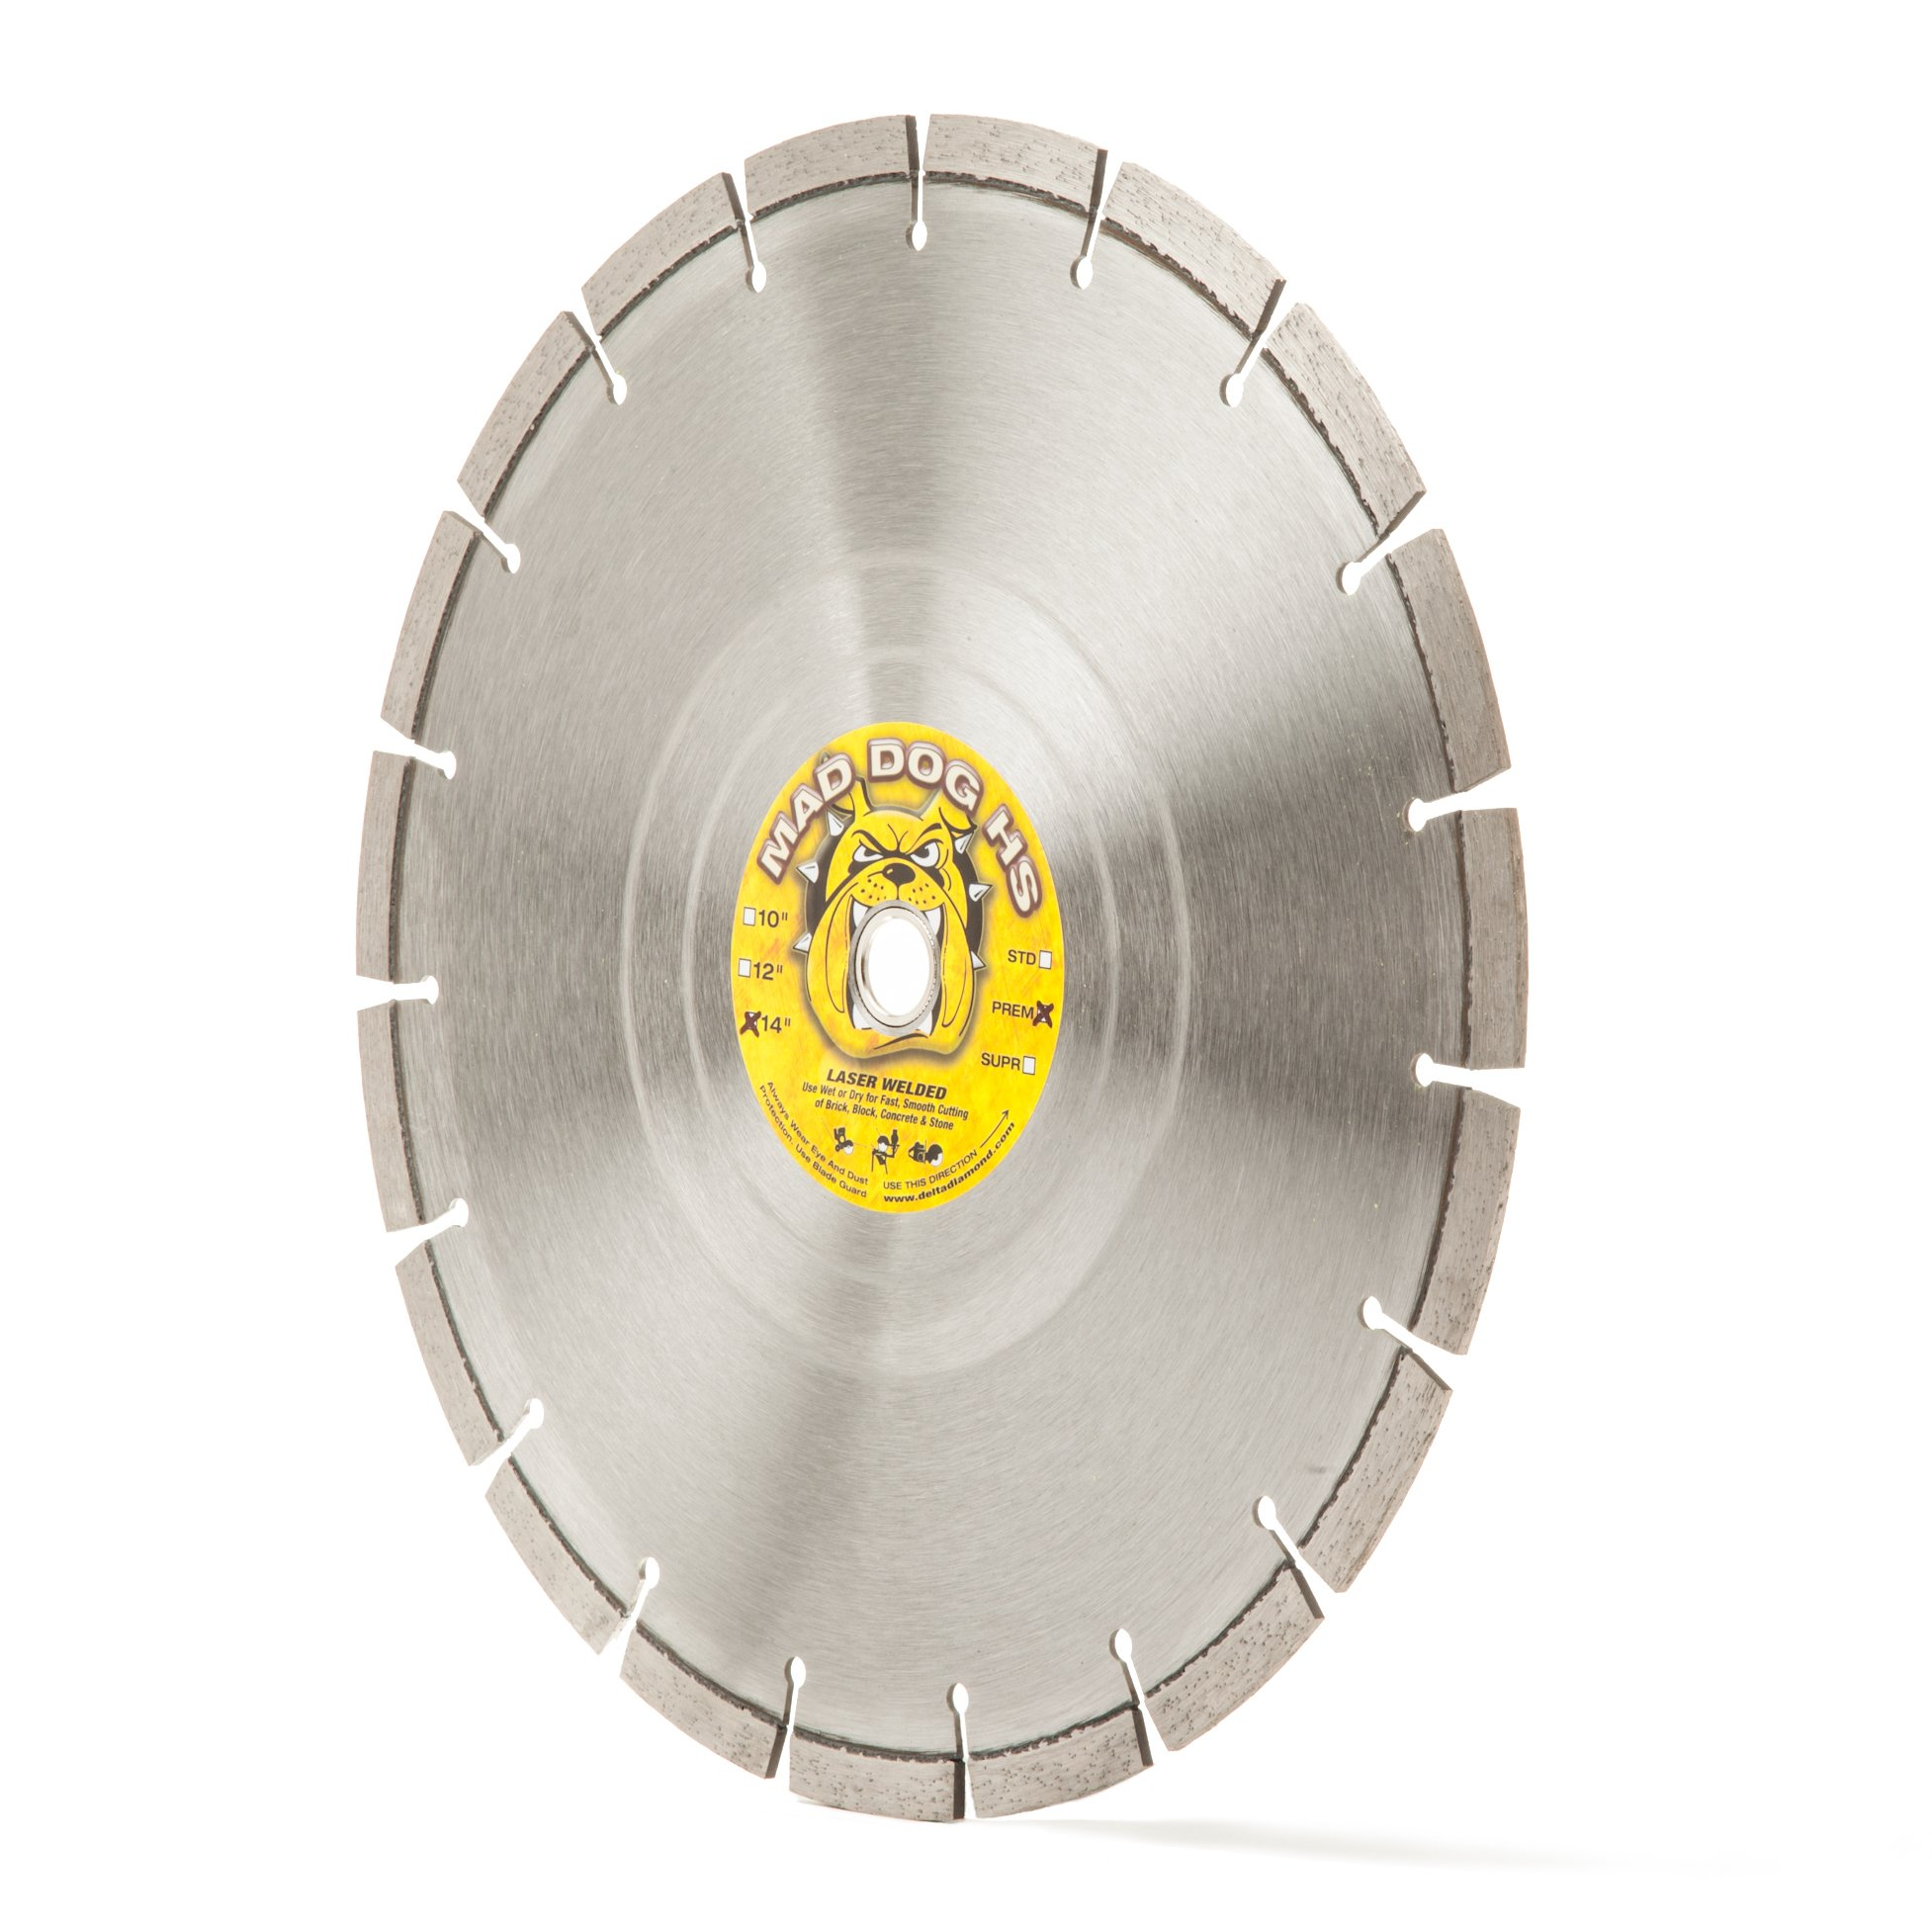 Mad Dog HS 14-Inch Laser-Welded Wet/Dry Masonry & Concrete Diamond Blade, 14'' X .125 X 1''-20MM Bushing. Made in USA. (14-Inch)